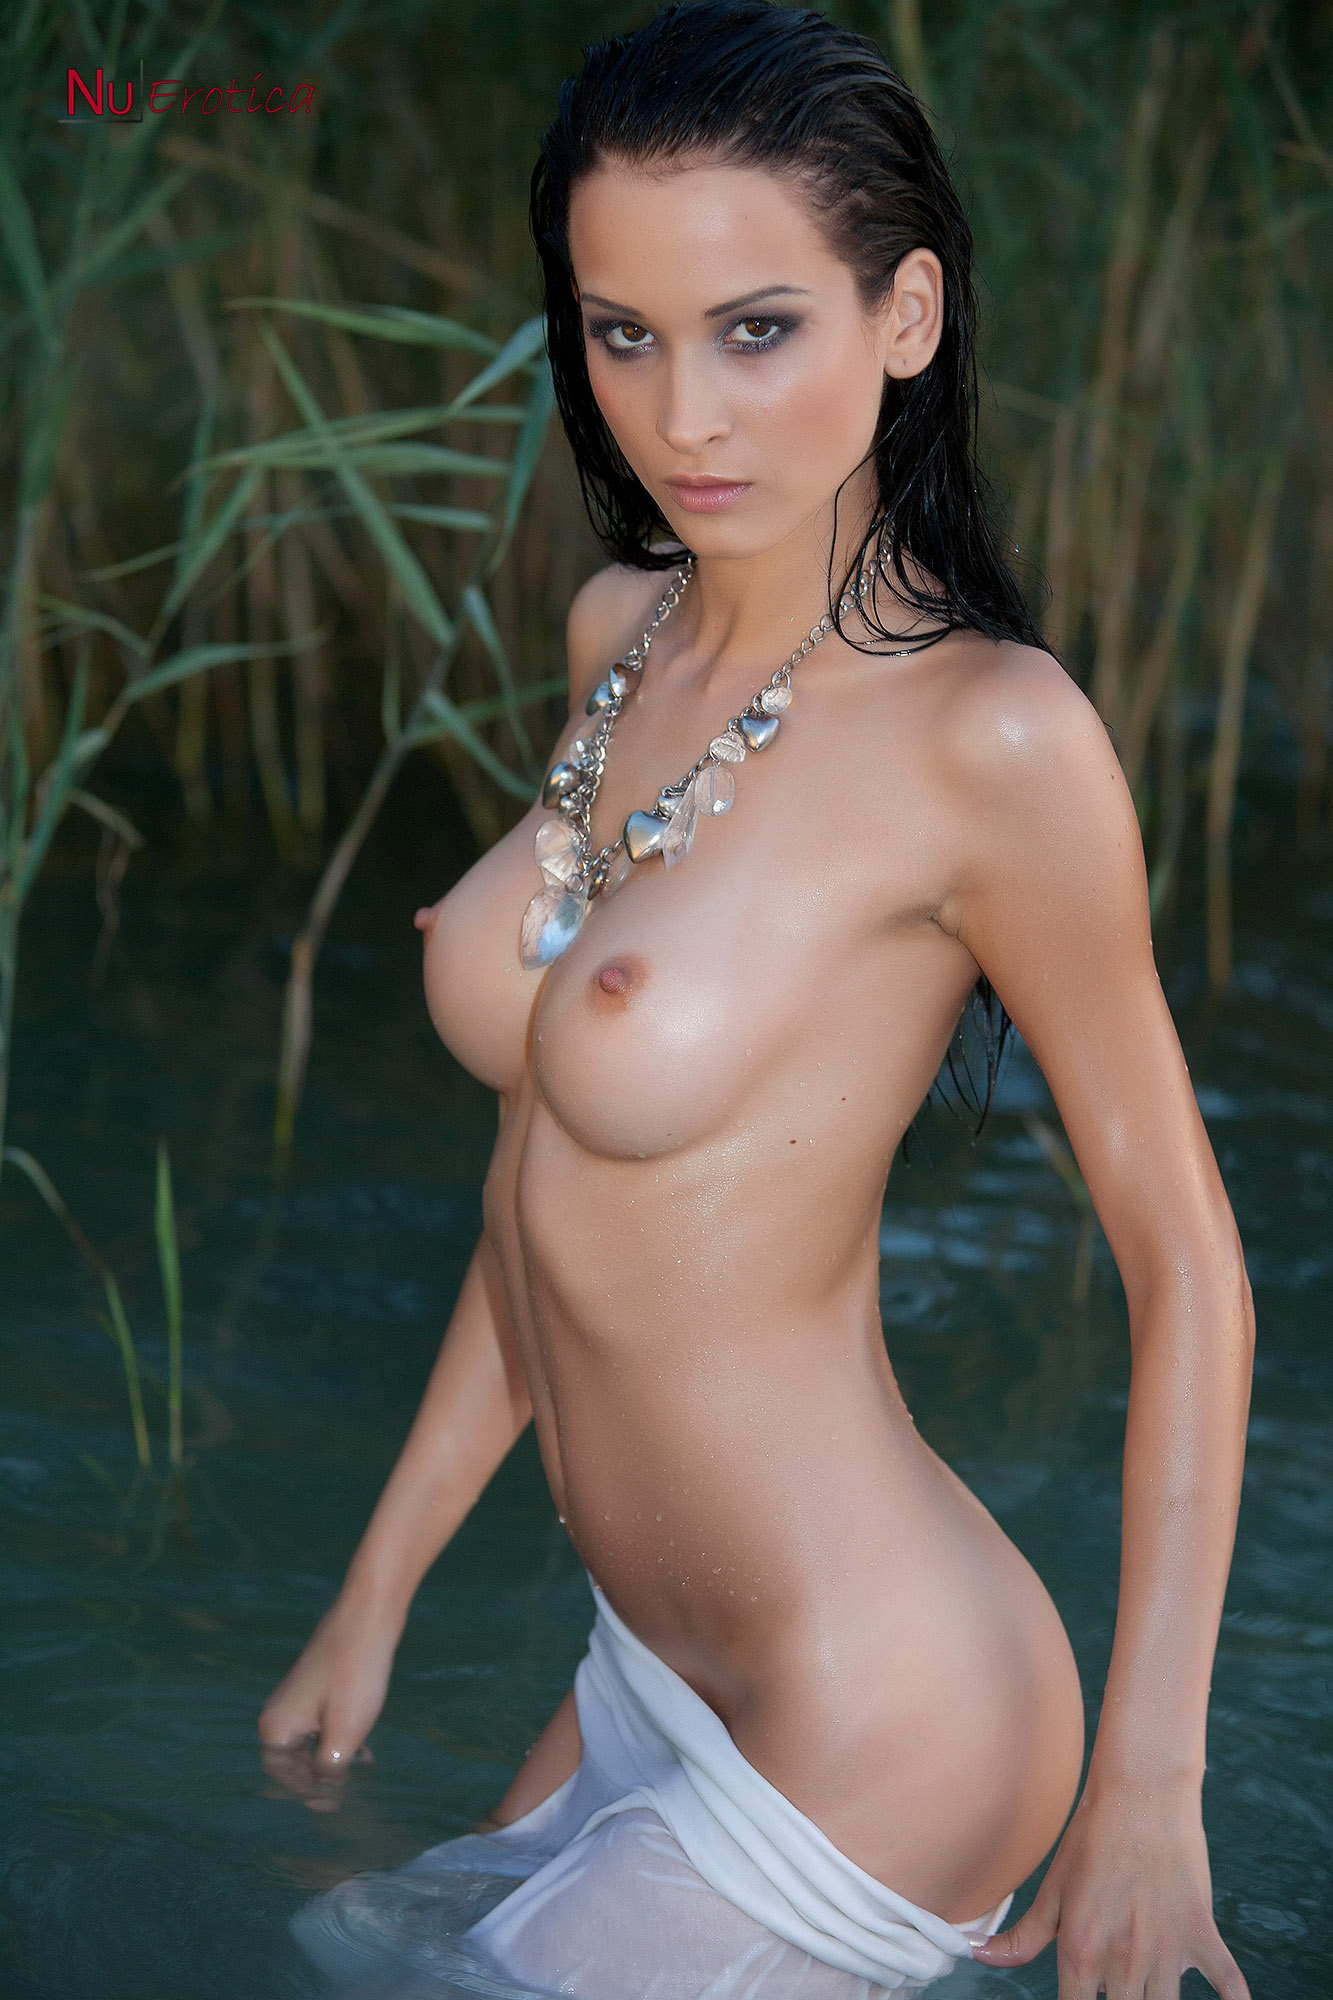 hungarian adult glamour models